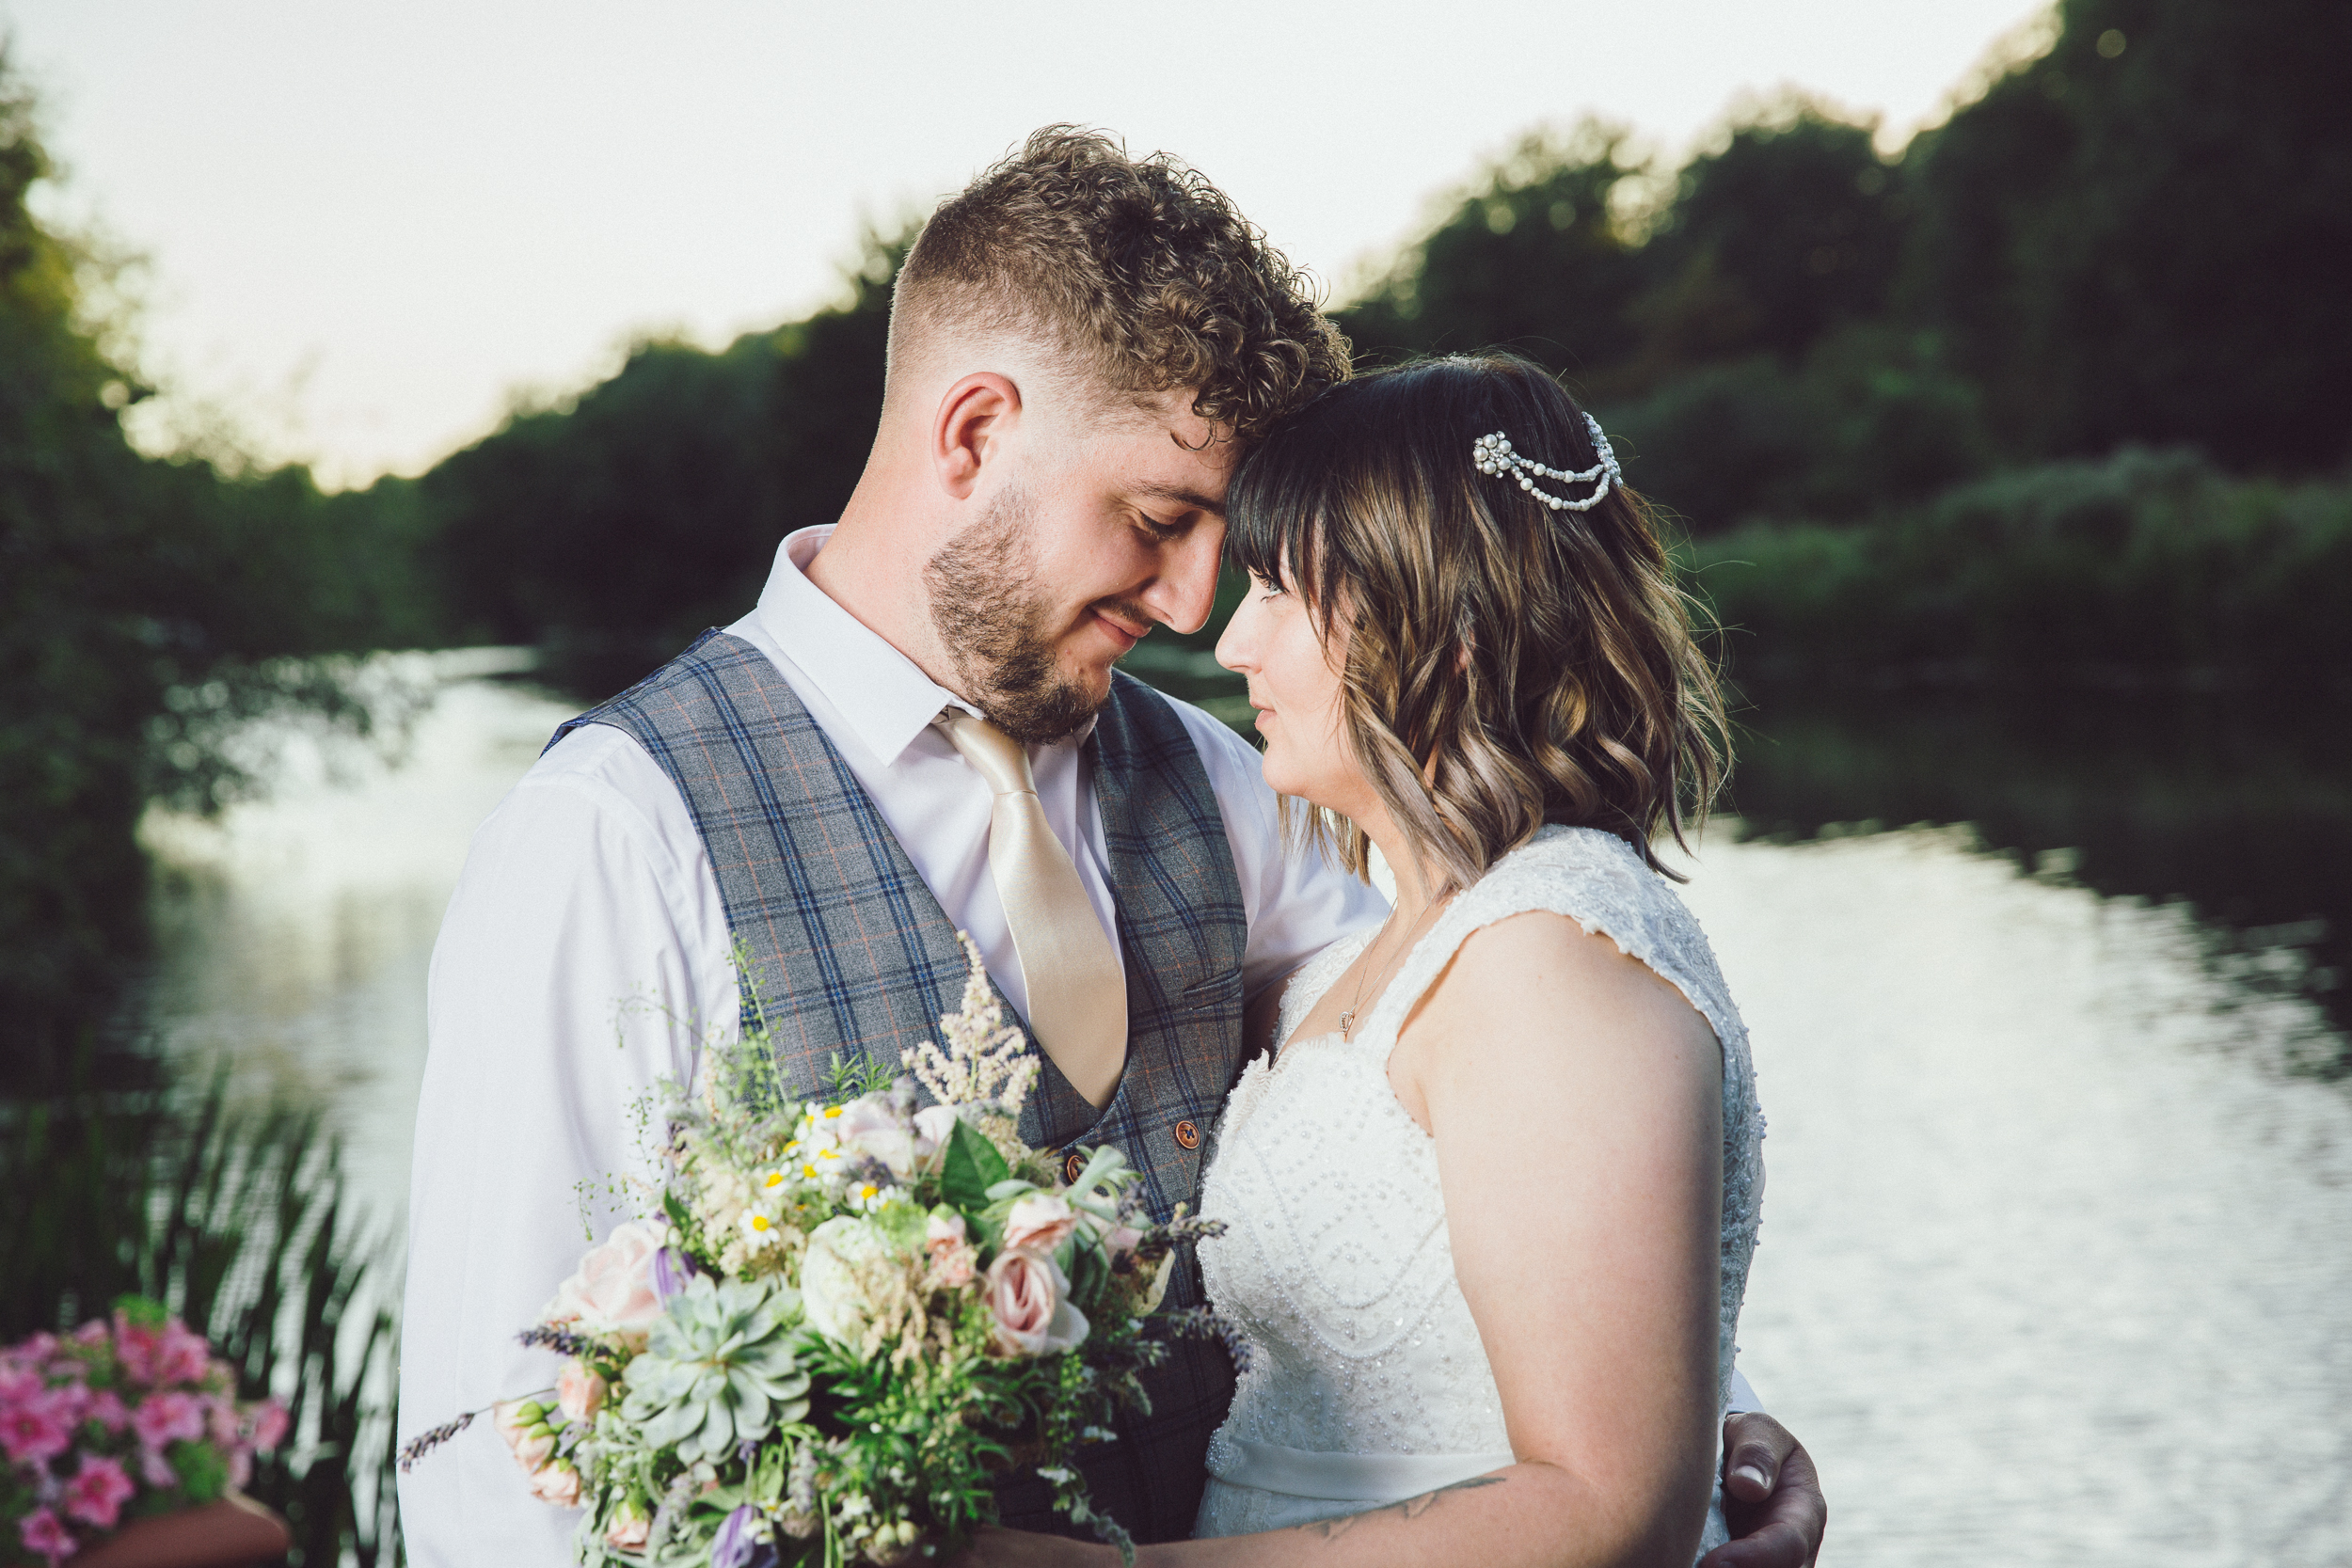 Beautiful shot by the river taken by Bedfordshire wedding photographer Richard Puncheon.